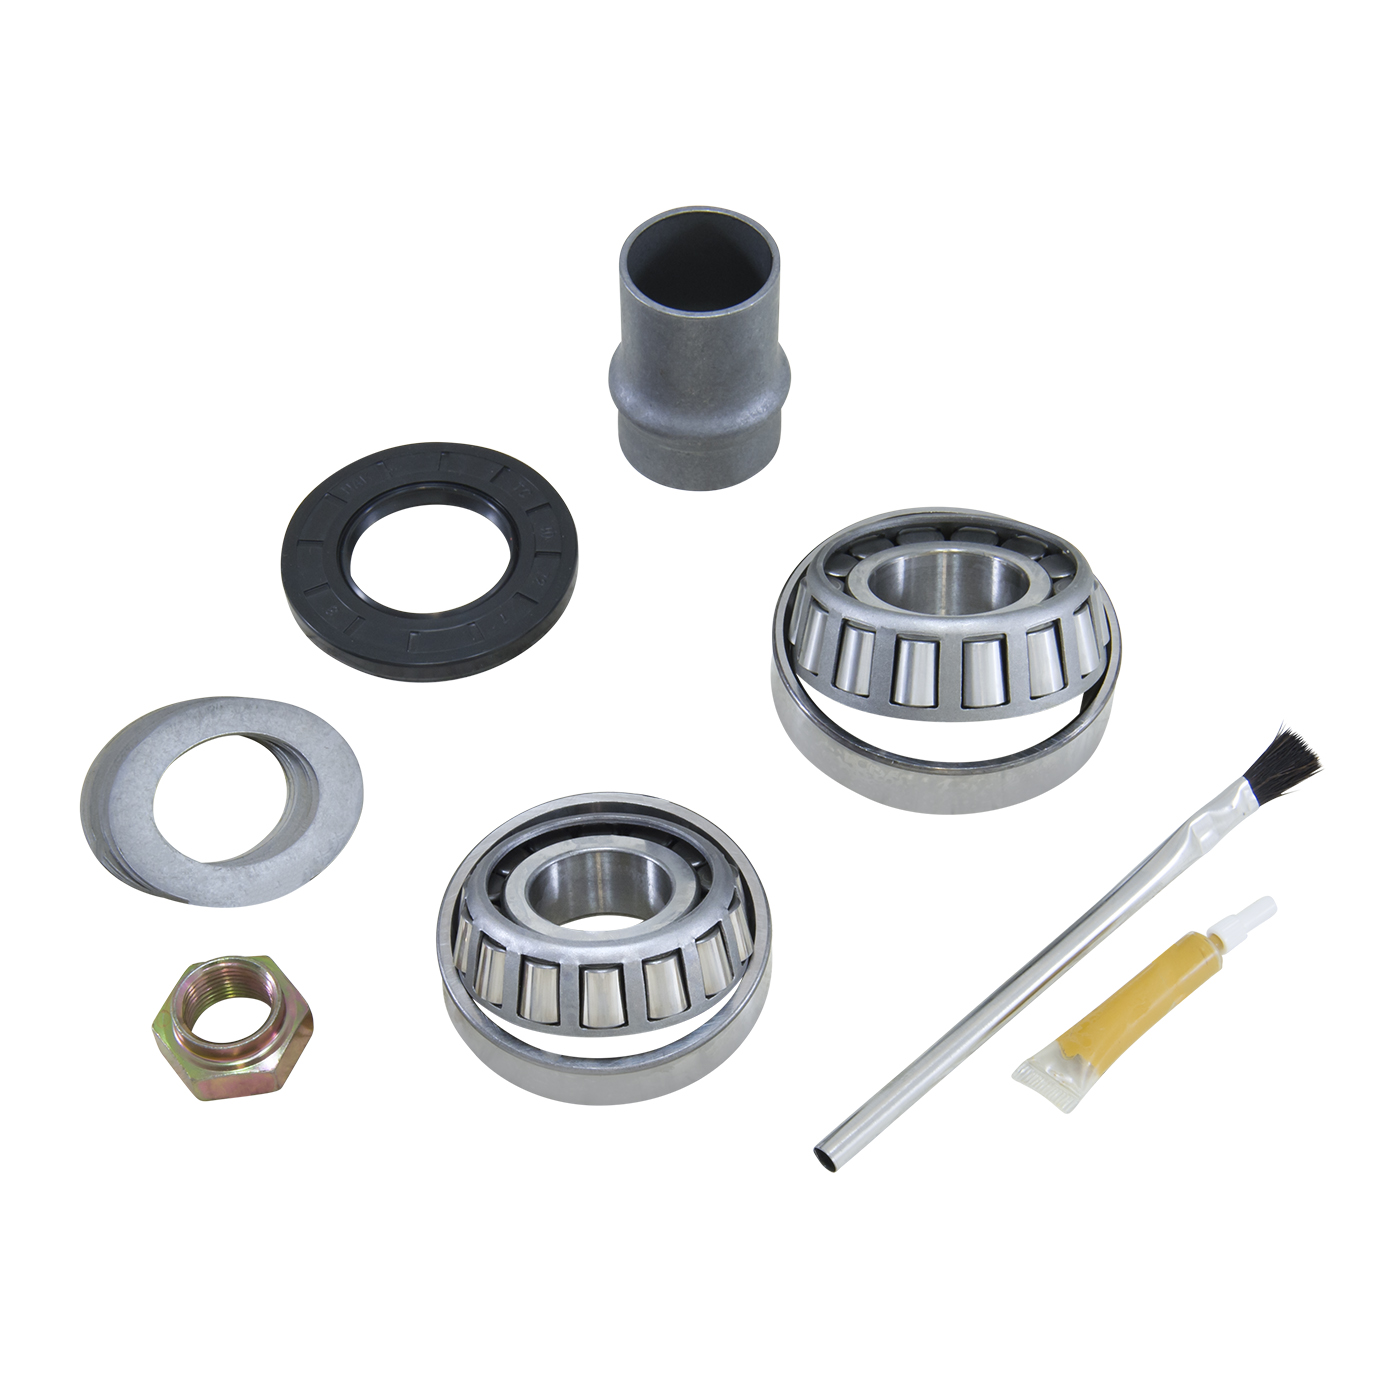 PK ISAM - Yukon Pinion install kit for Suzuki Samurai differential